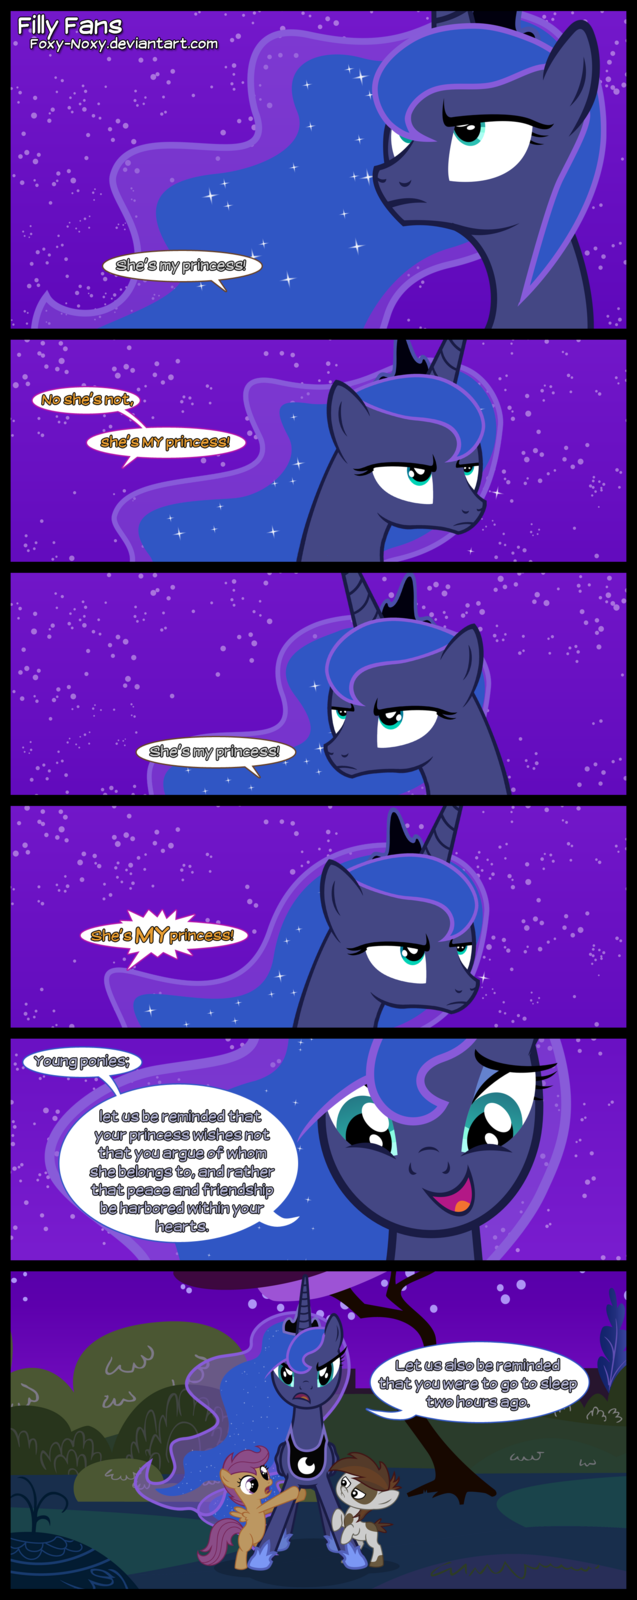 Filly Fans